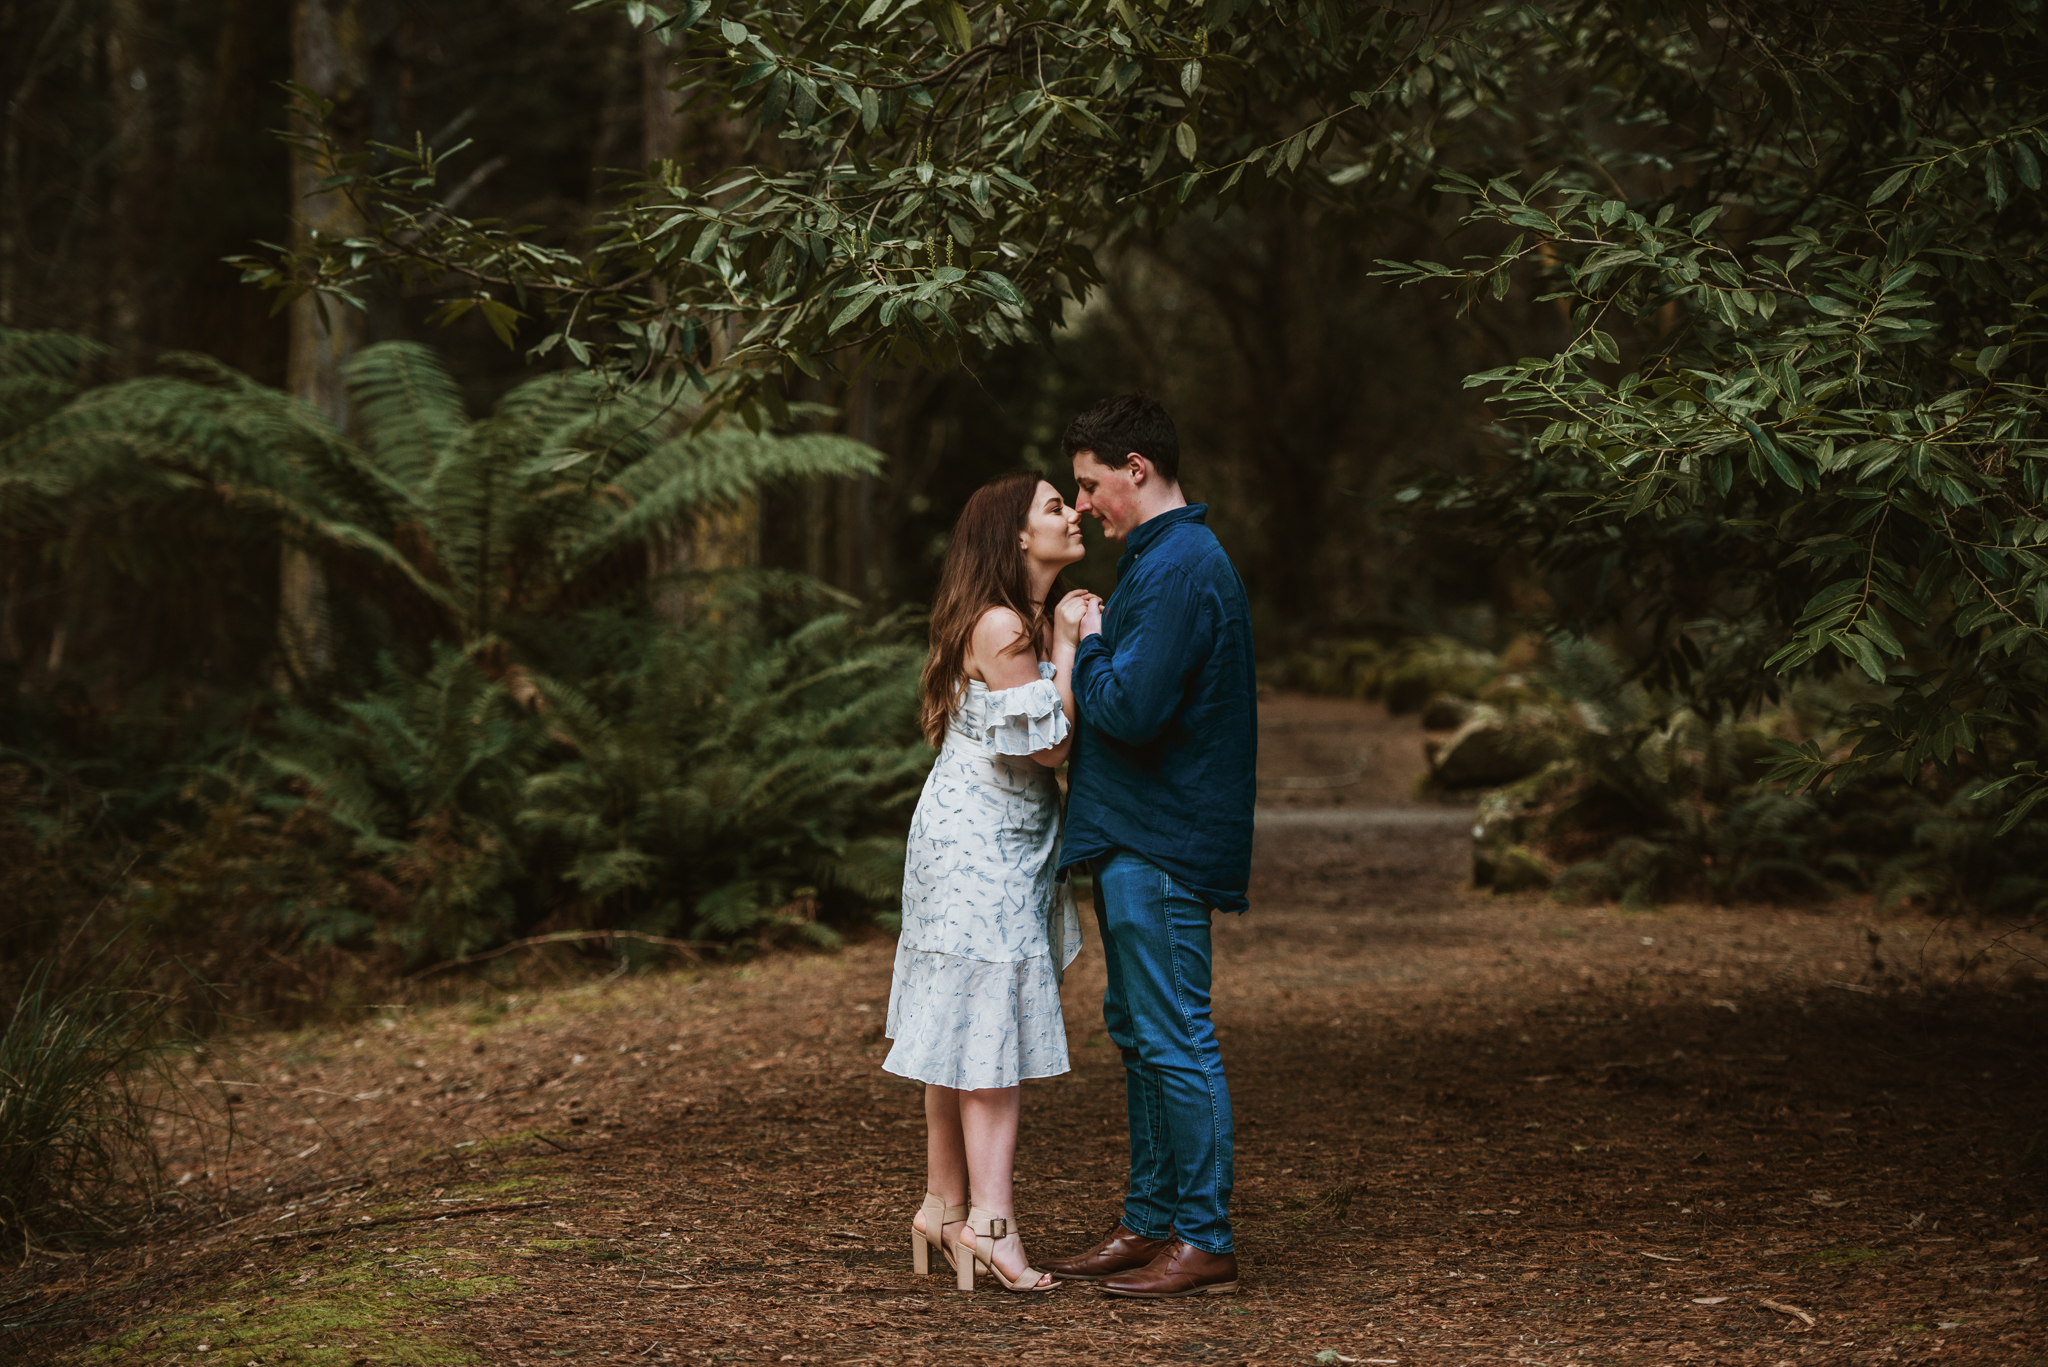 launceston couples photographer-25.jpg